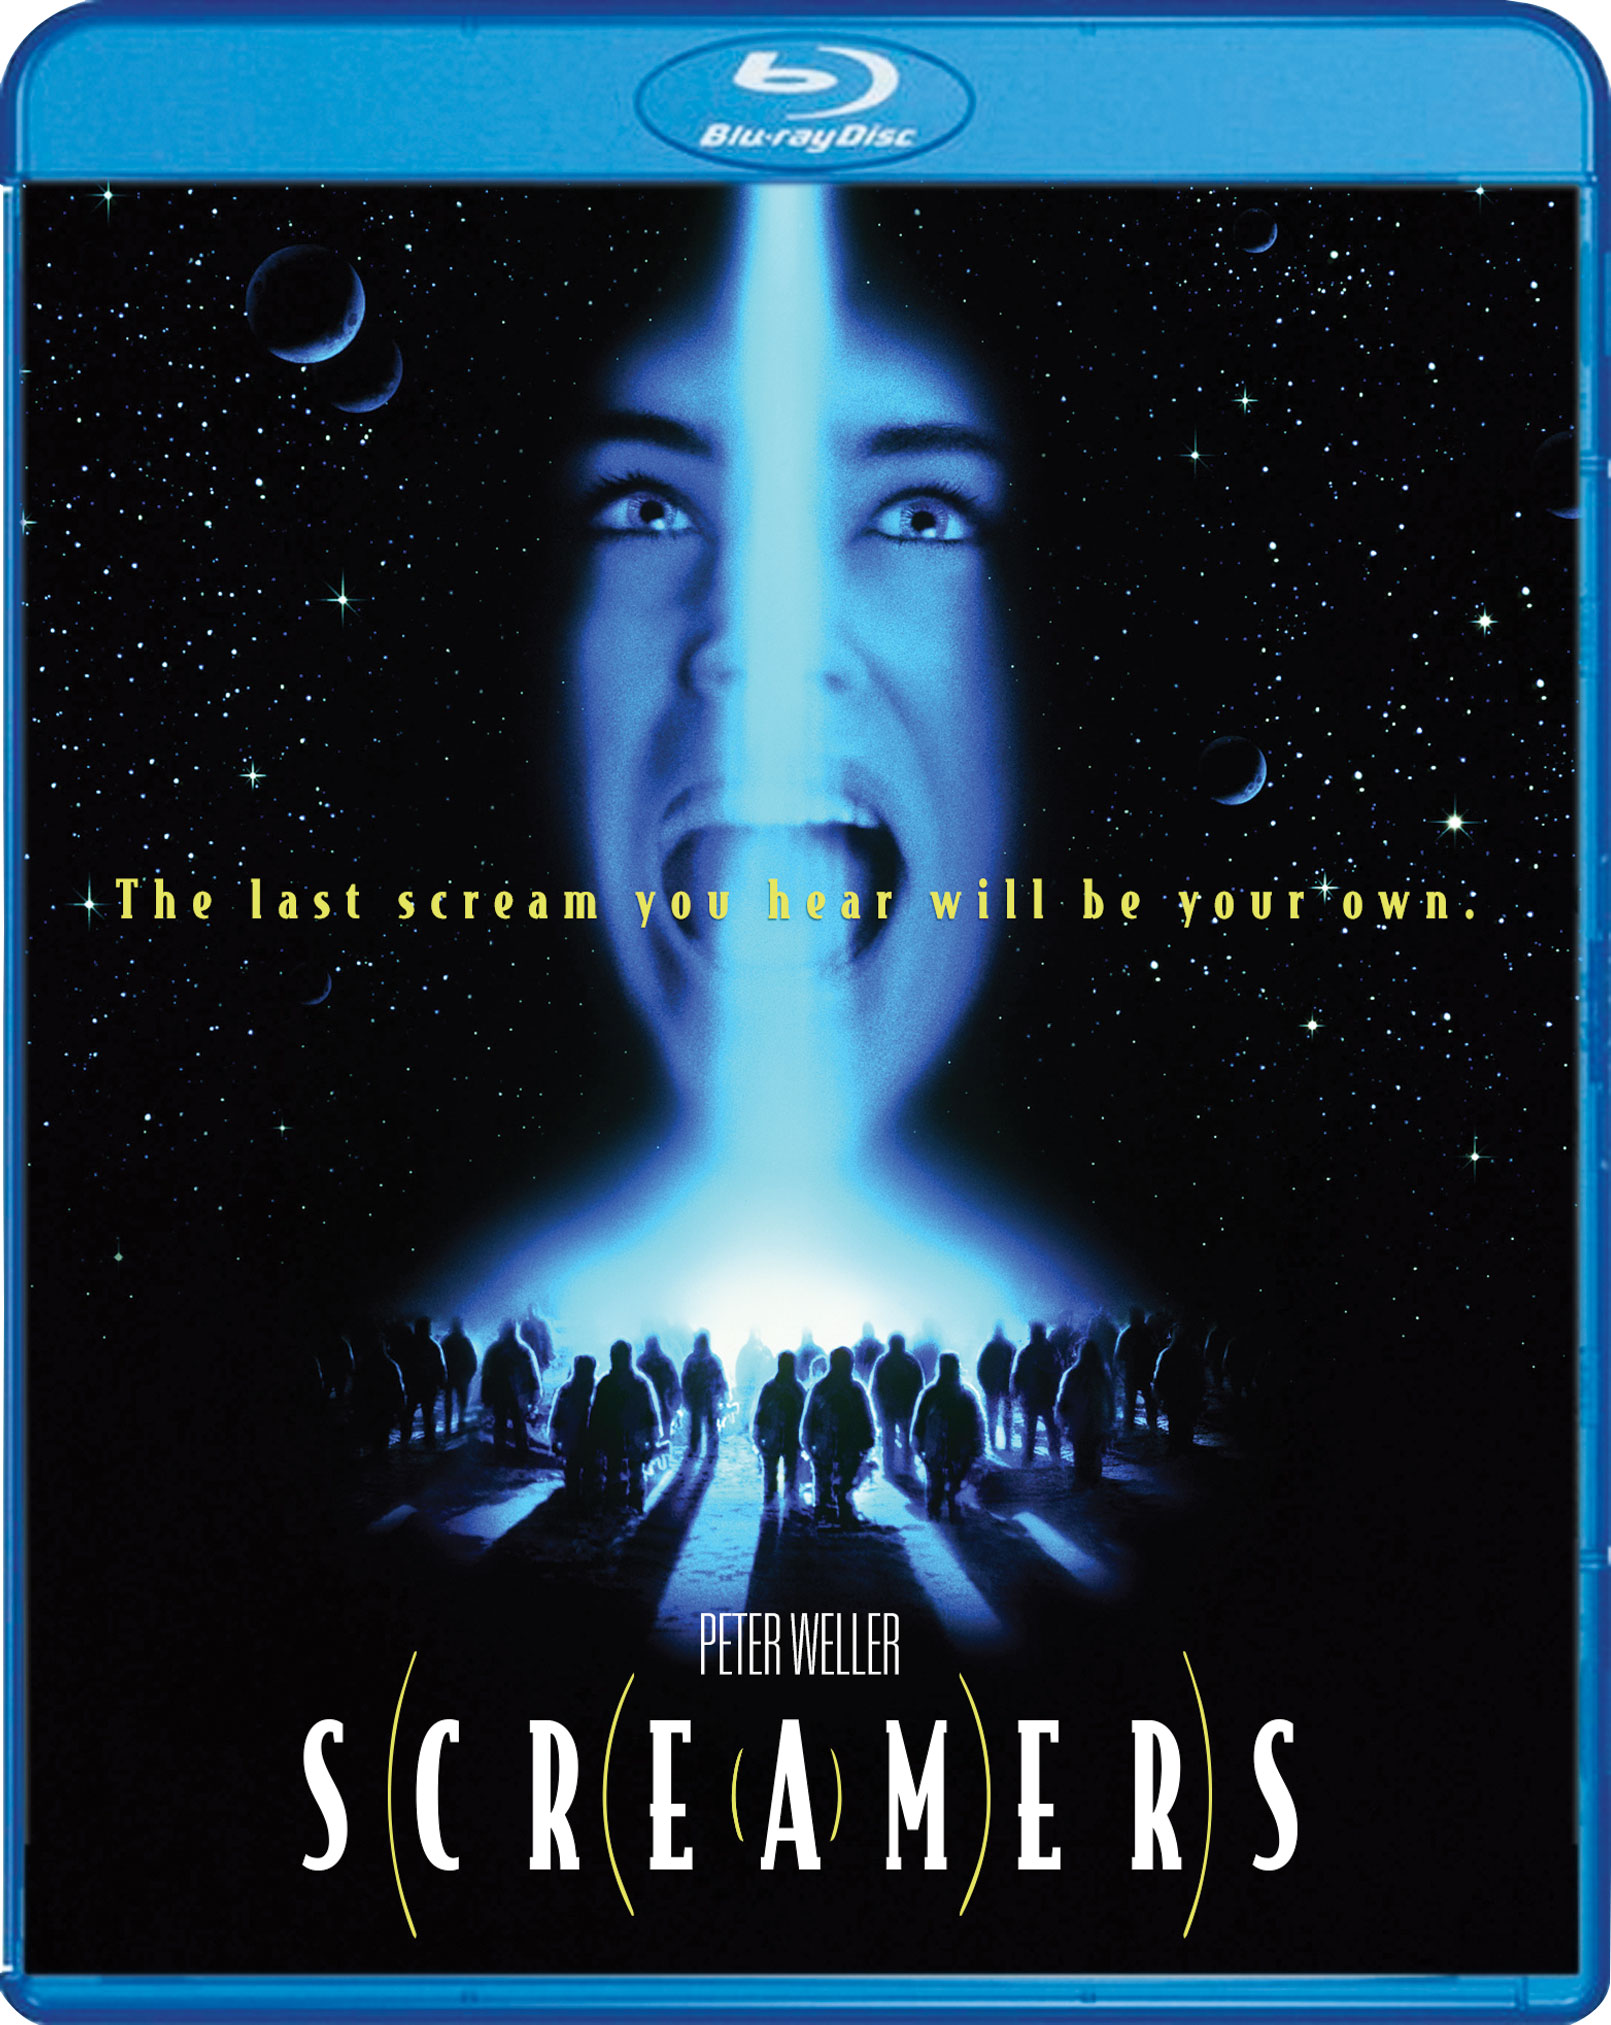 Screamers Blu-ray Review #2 (Scream Factory) - Cultsploitation